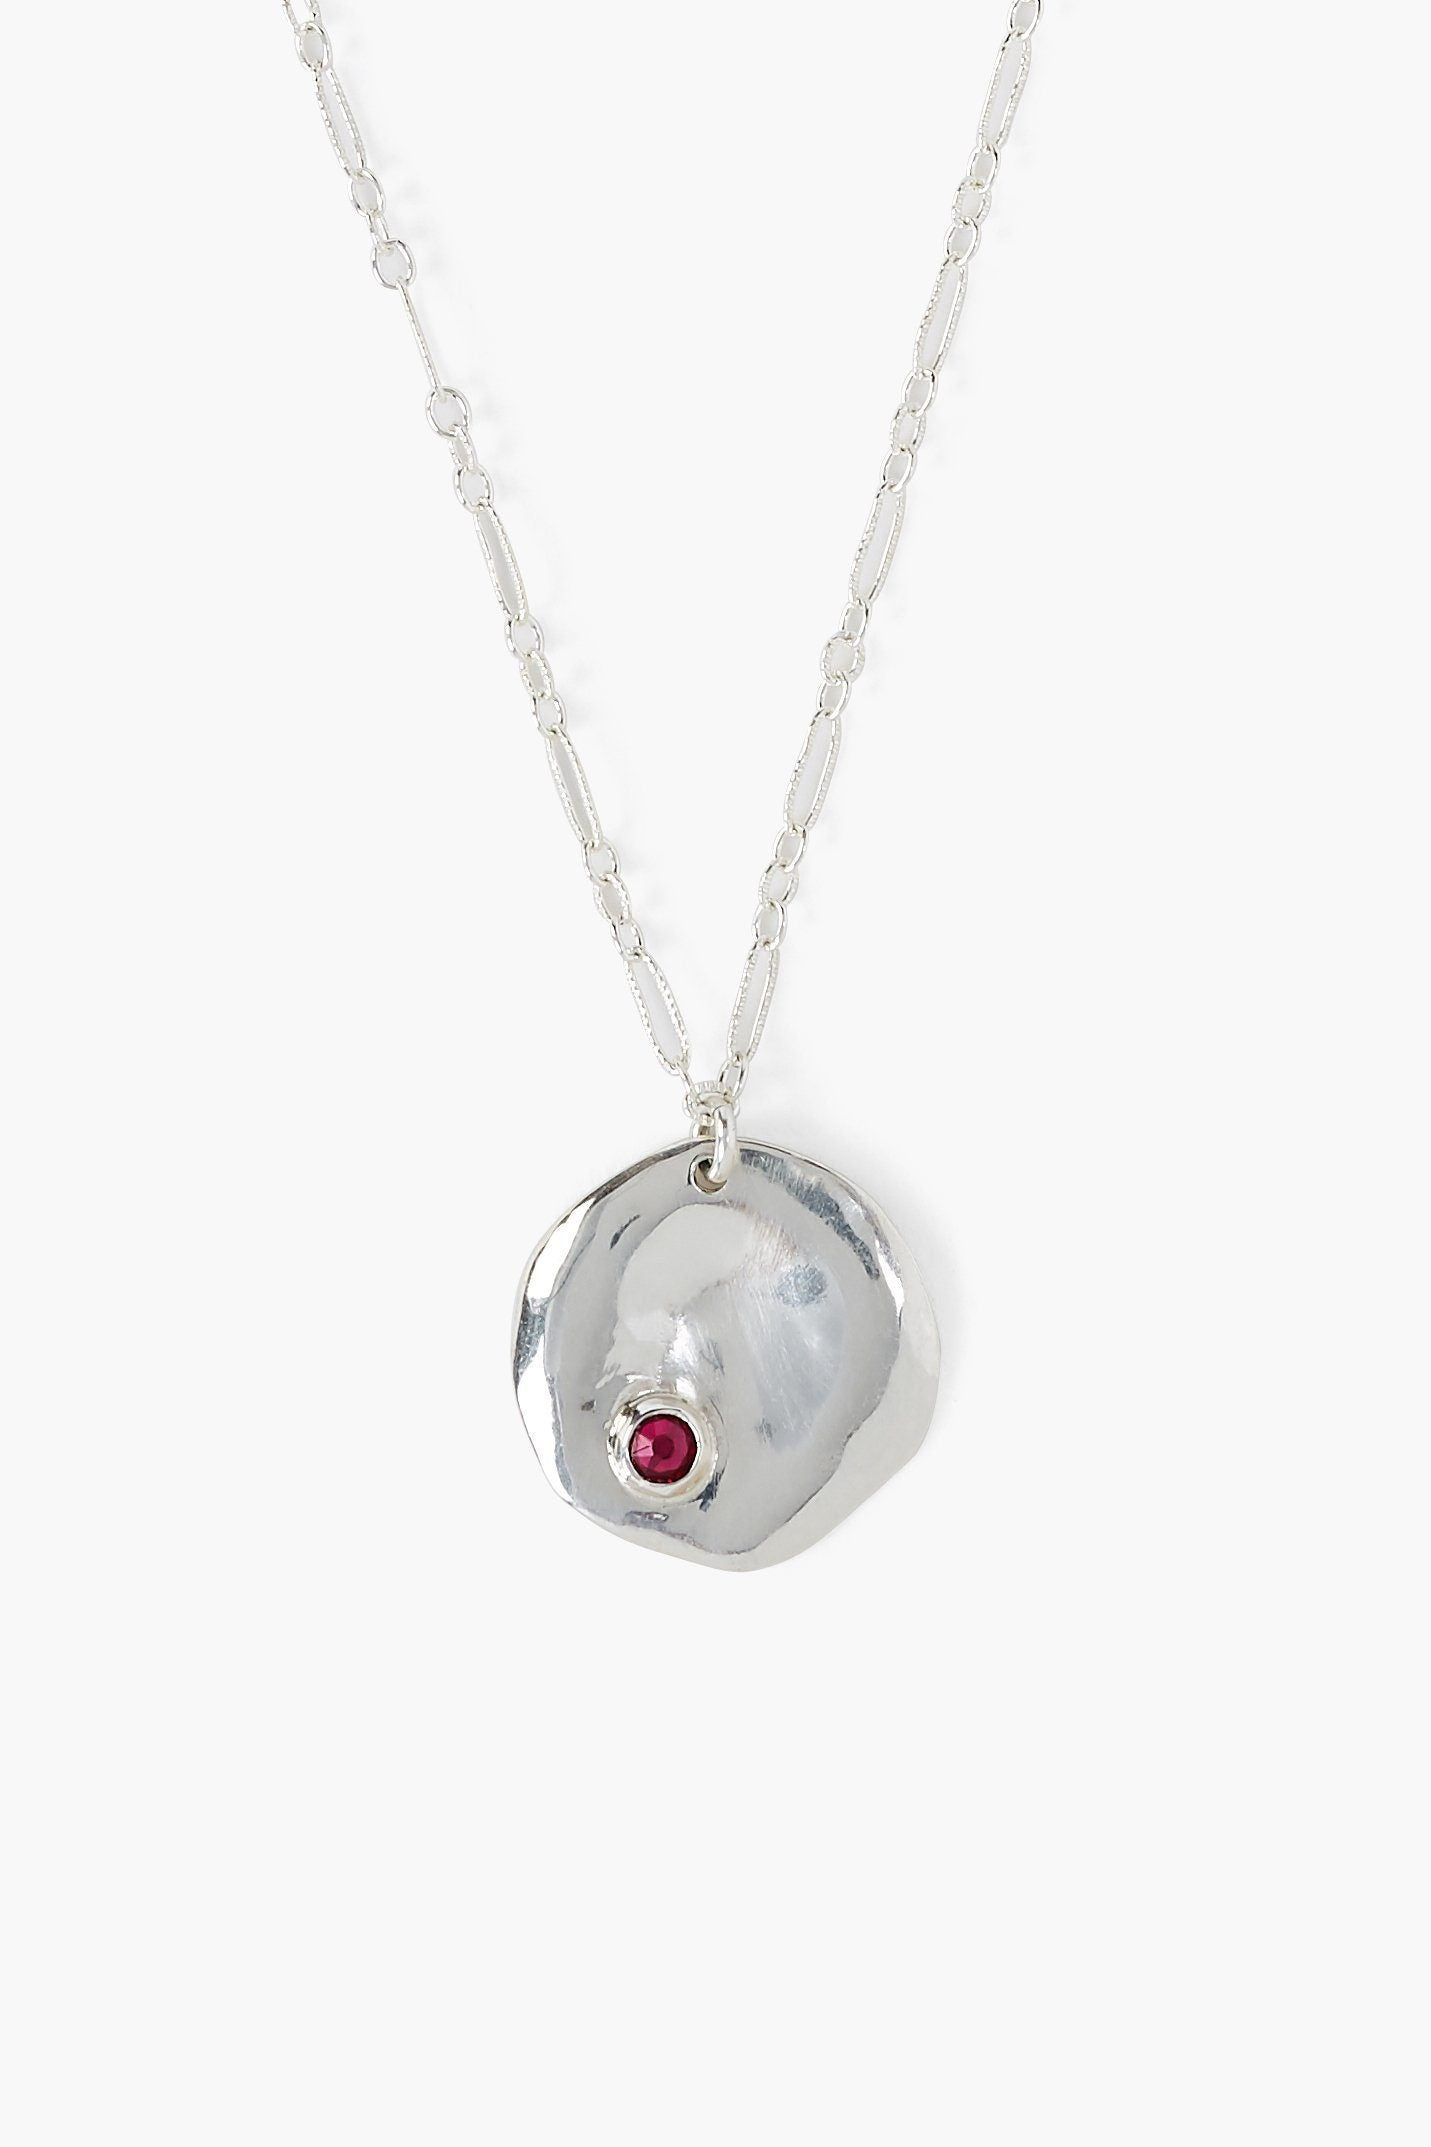 July Ruby Birthstone Coin Pendant Necklace